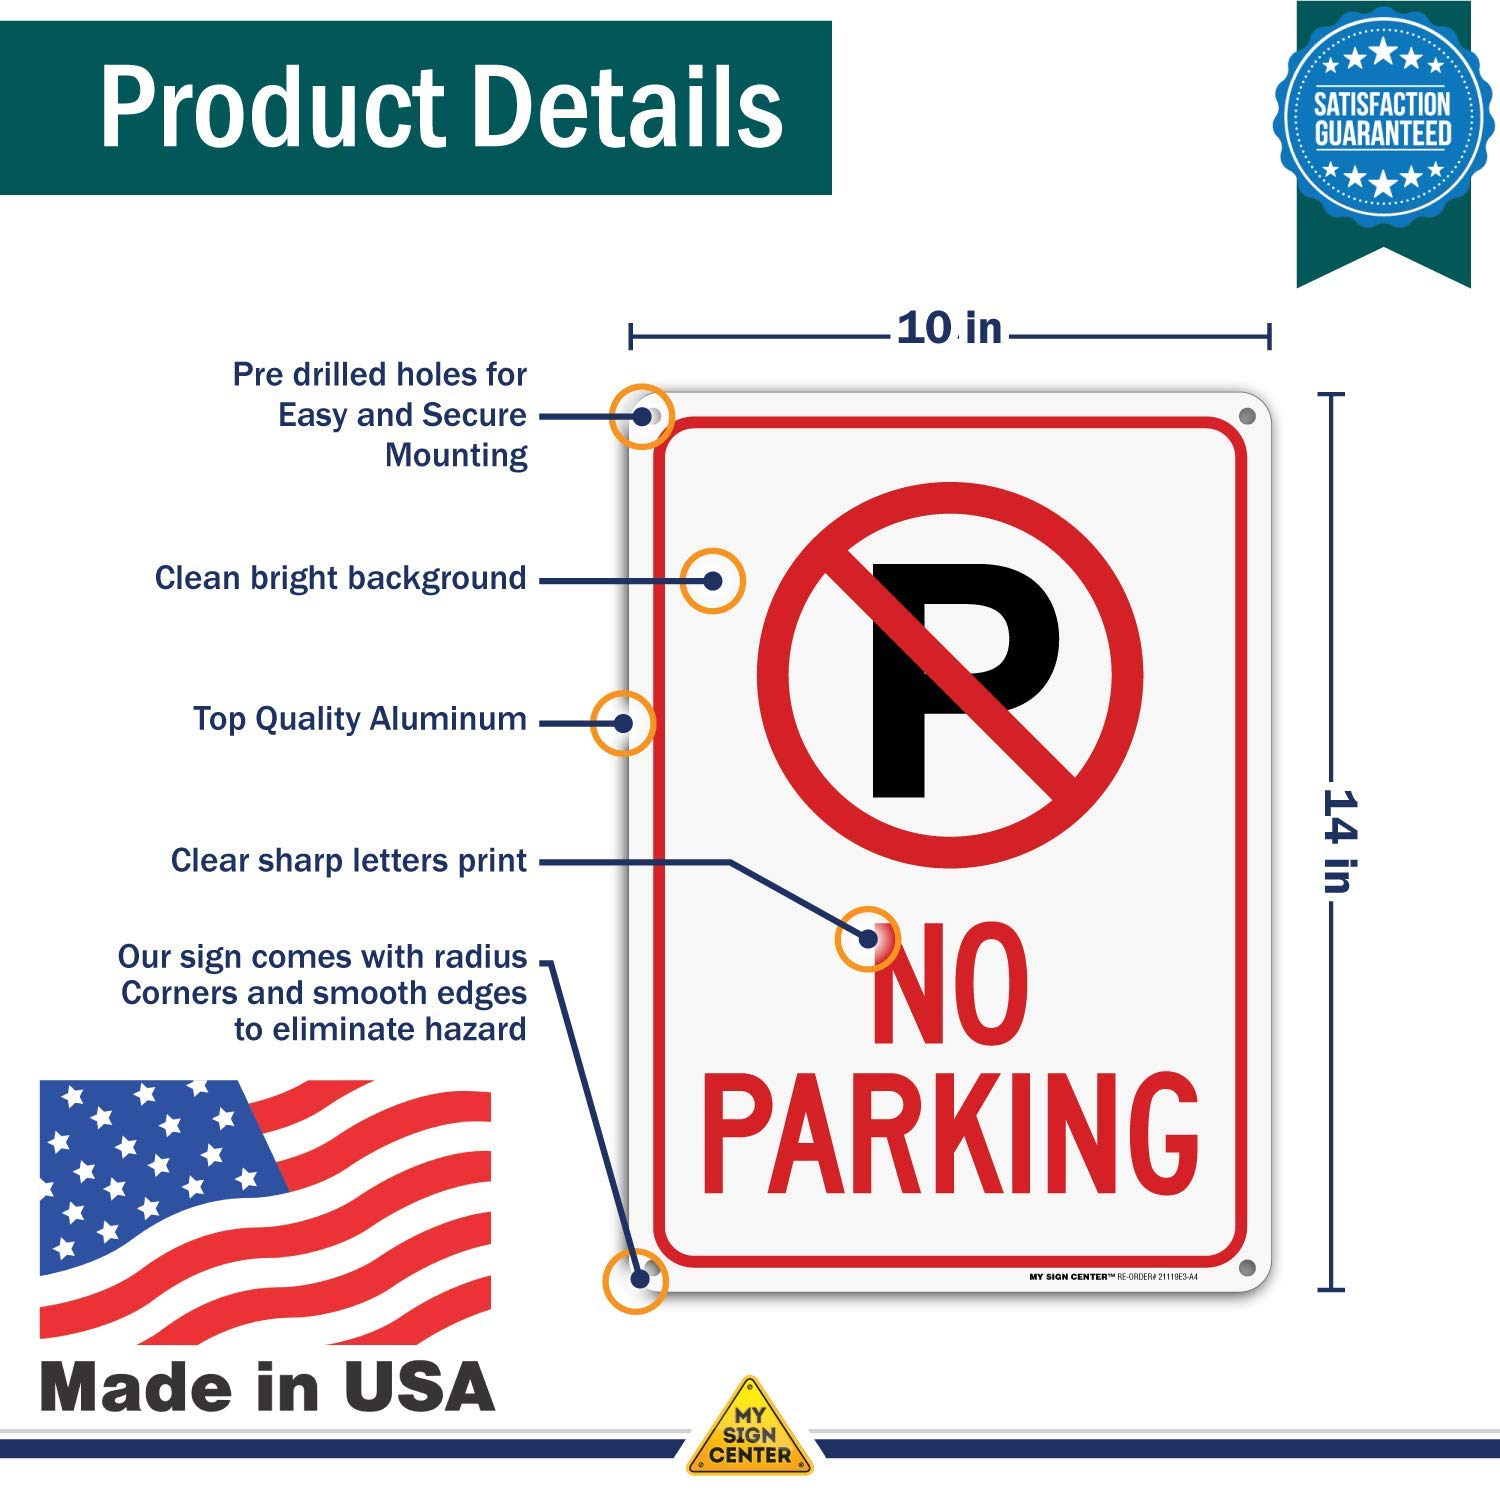 No Parking Sign by My Sign Center Outdoor Rust-Free Metal 21119E3-A4 10 x 14